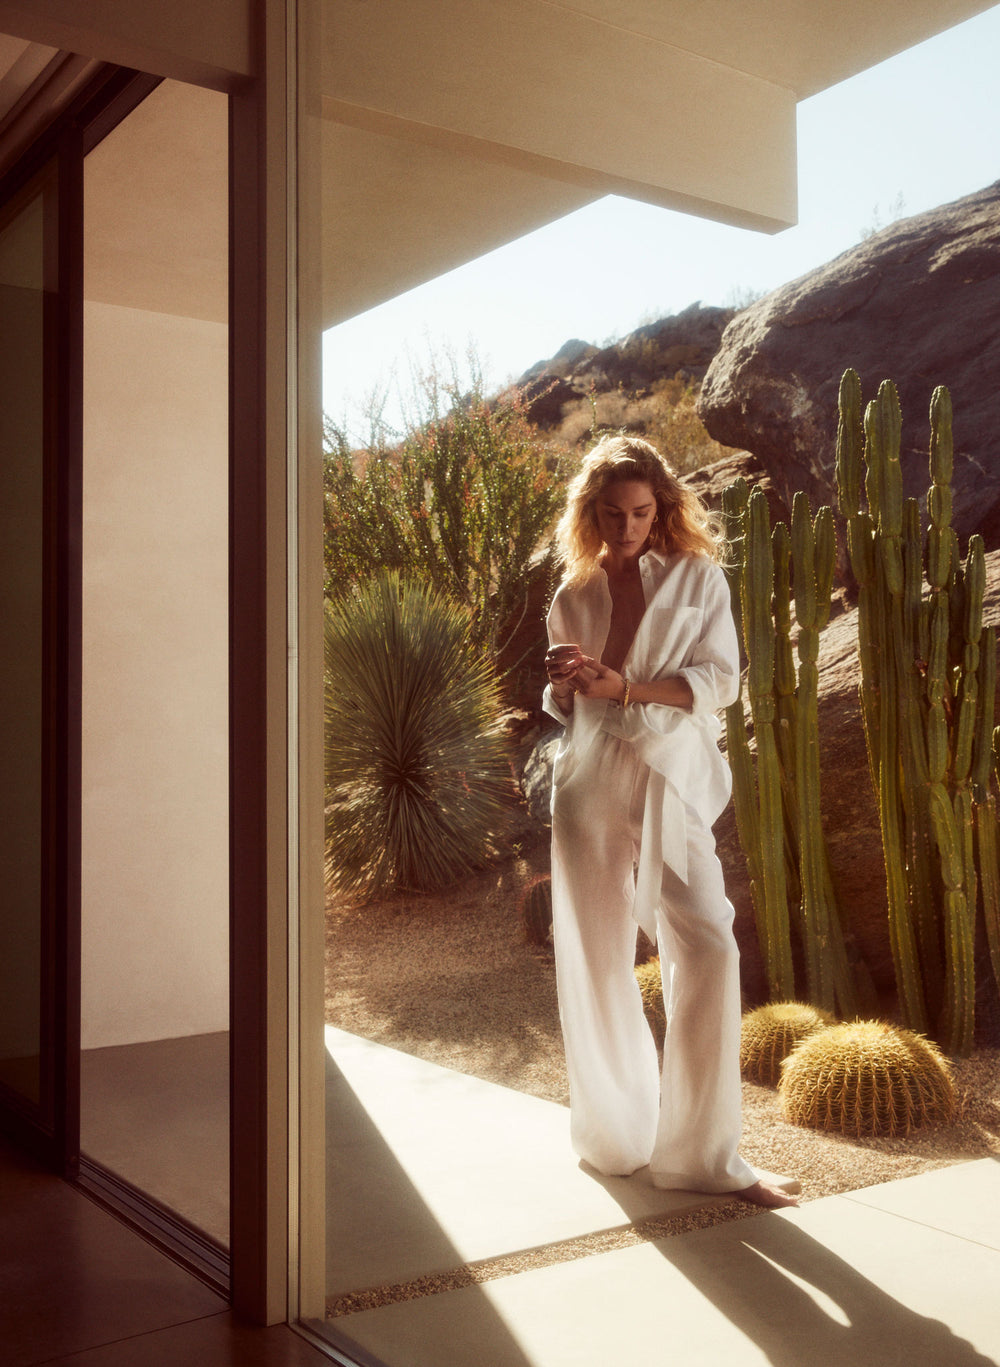 As seen on Erin Wasson, Lightweight luxury linens. Choose your perfect linen tops, wide leg trousers, dresses or oversized shirts from the collection. The perfect essential for summer days on vacation or days in the city - Asceno London